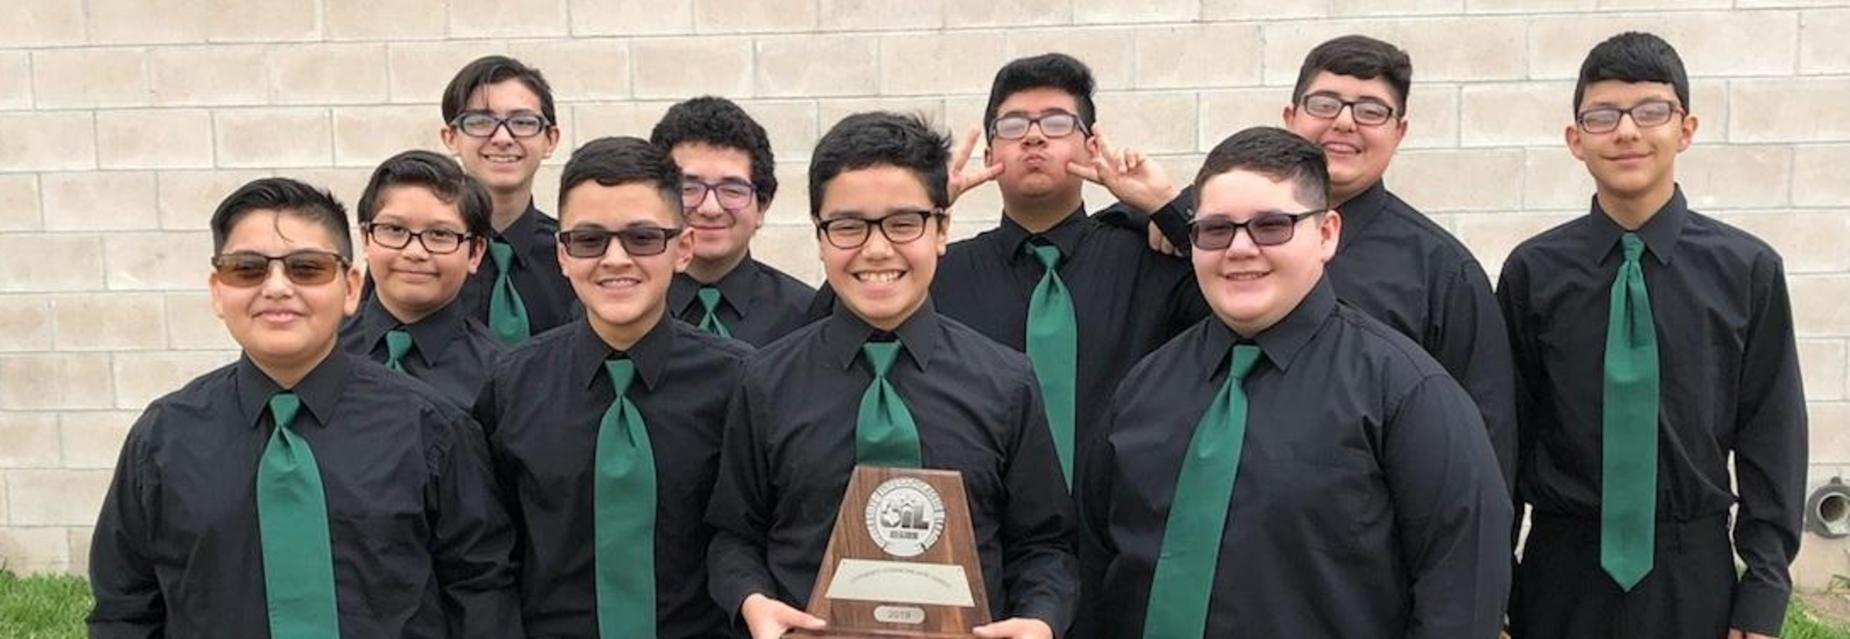 SWEEPSTAKES for Boys choir!